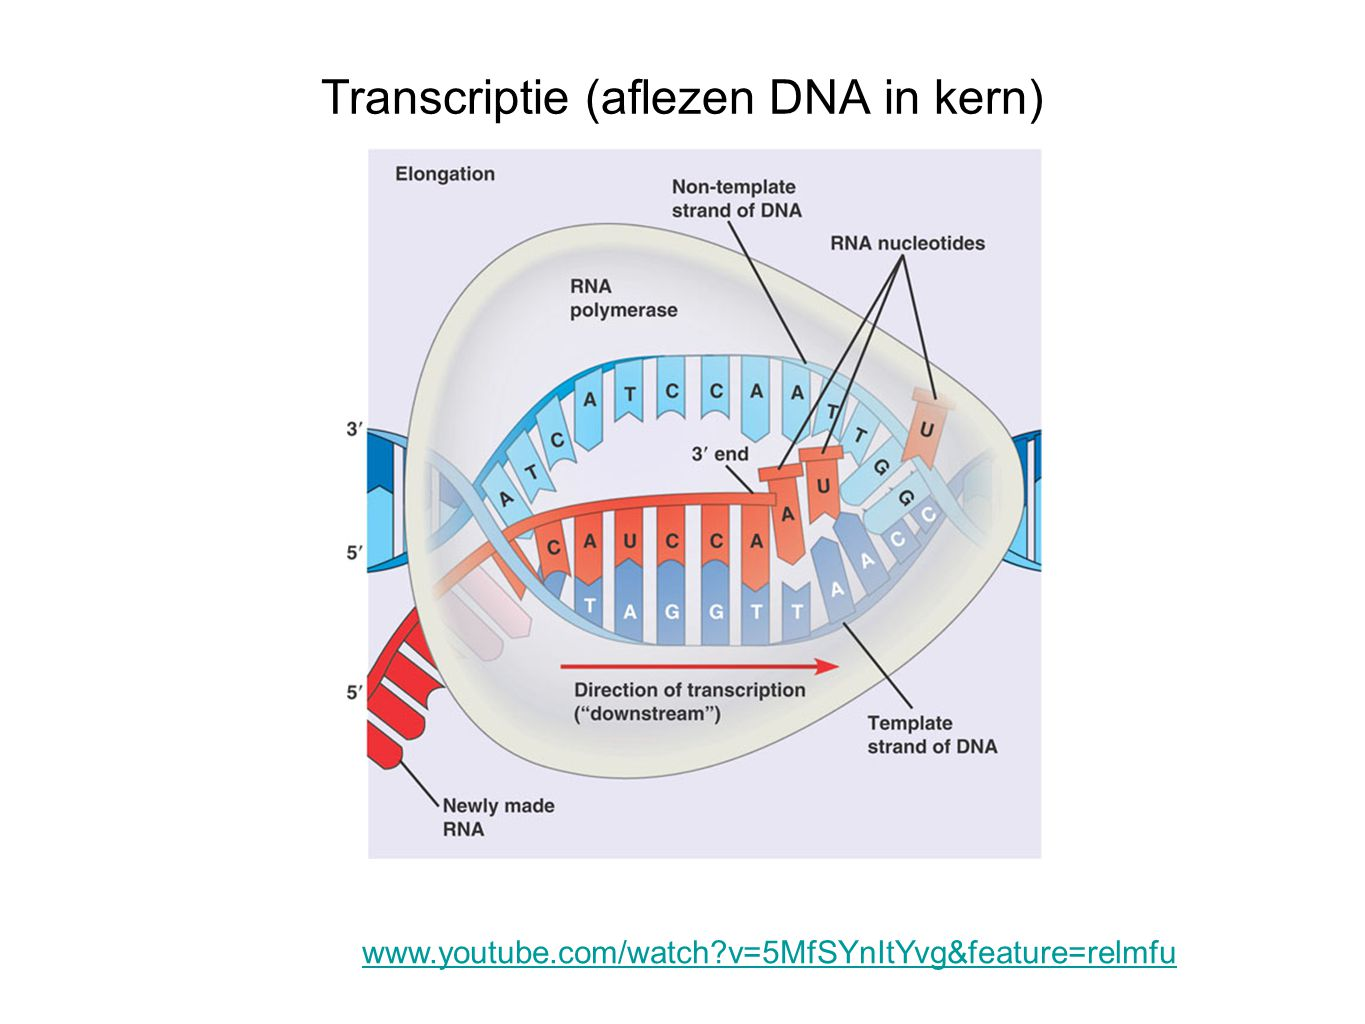 Transcriptie (aflezen DNA in kern)